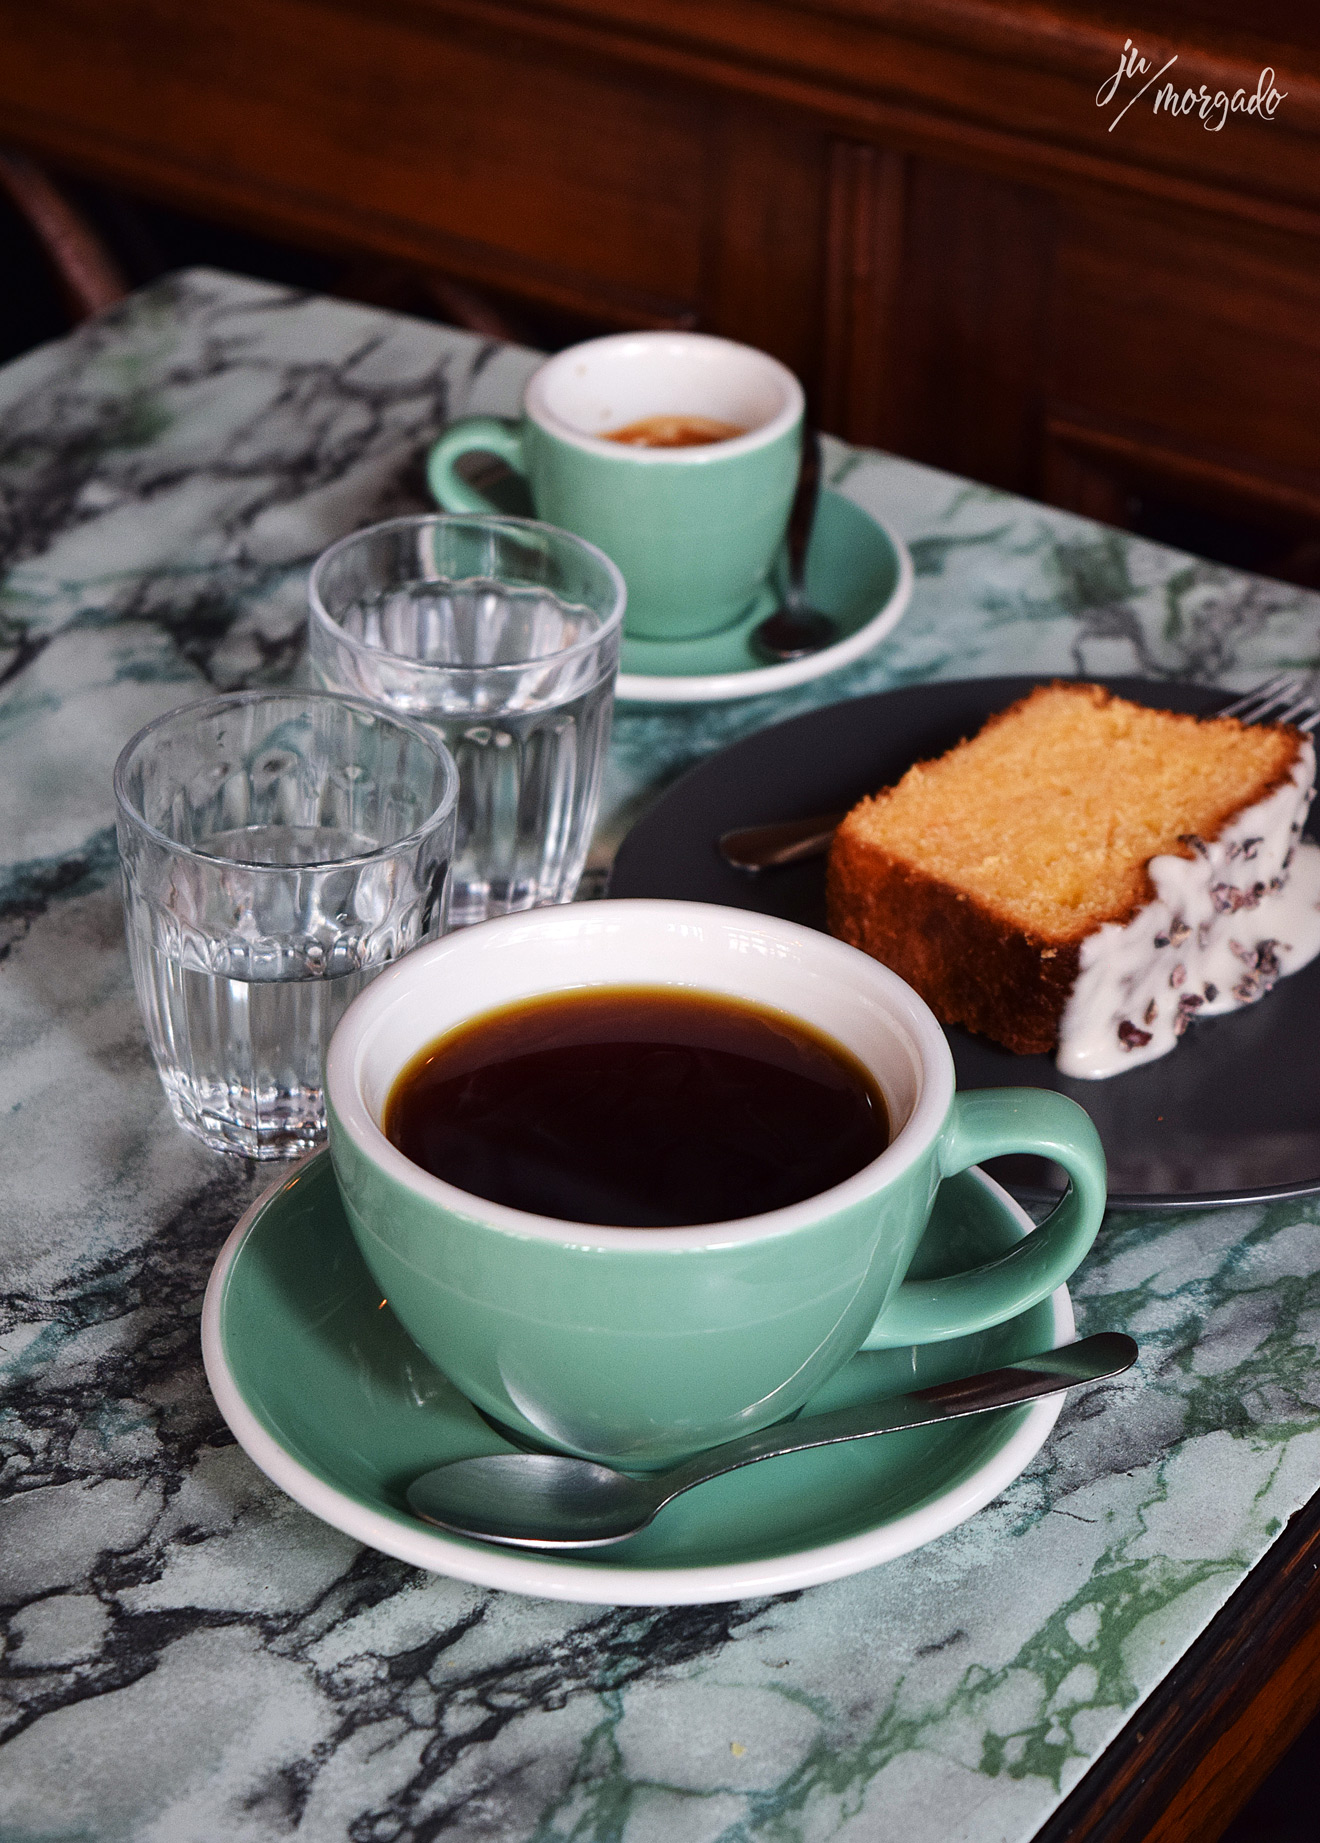 V60 e espresso com bolo de laranja e chocolate do La Farmacia